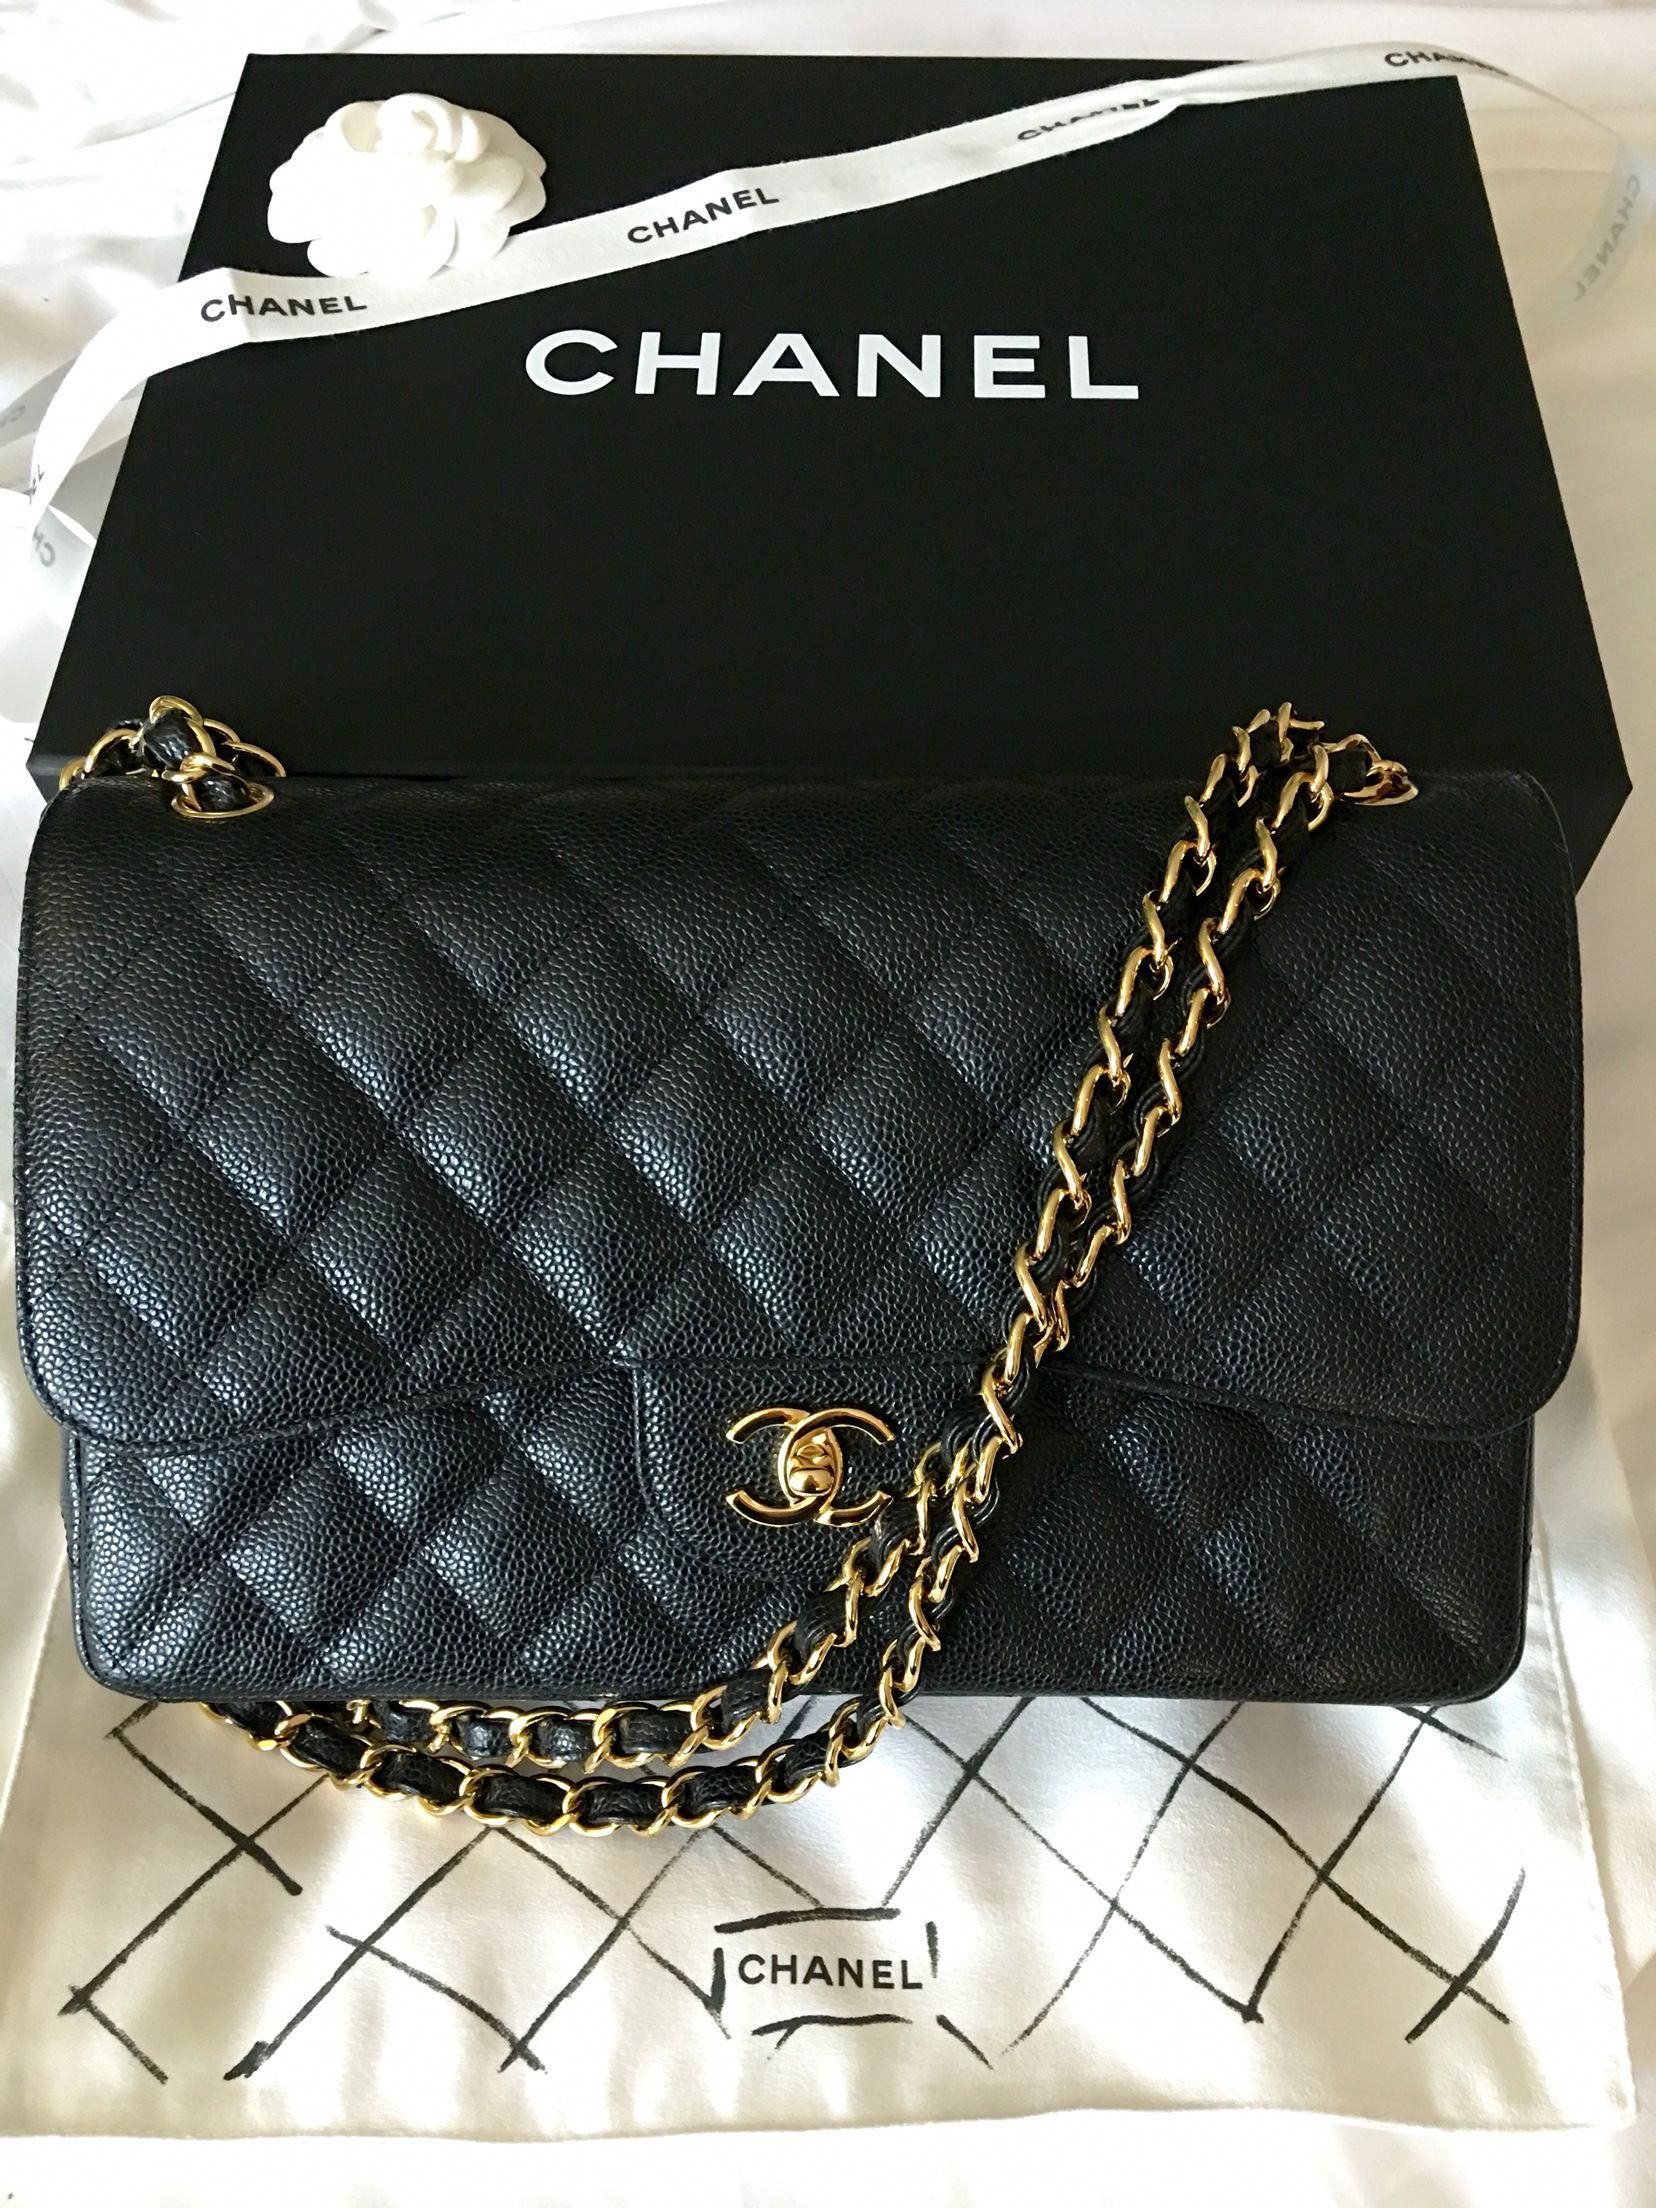 59243b285c05 Chanel 2.55 Caviar Medium Classic Double Flap Bag - black/gold | lll  Fashion lll | Chanel bag classic, Chanel quilted handbag, Vintage chanel bag